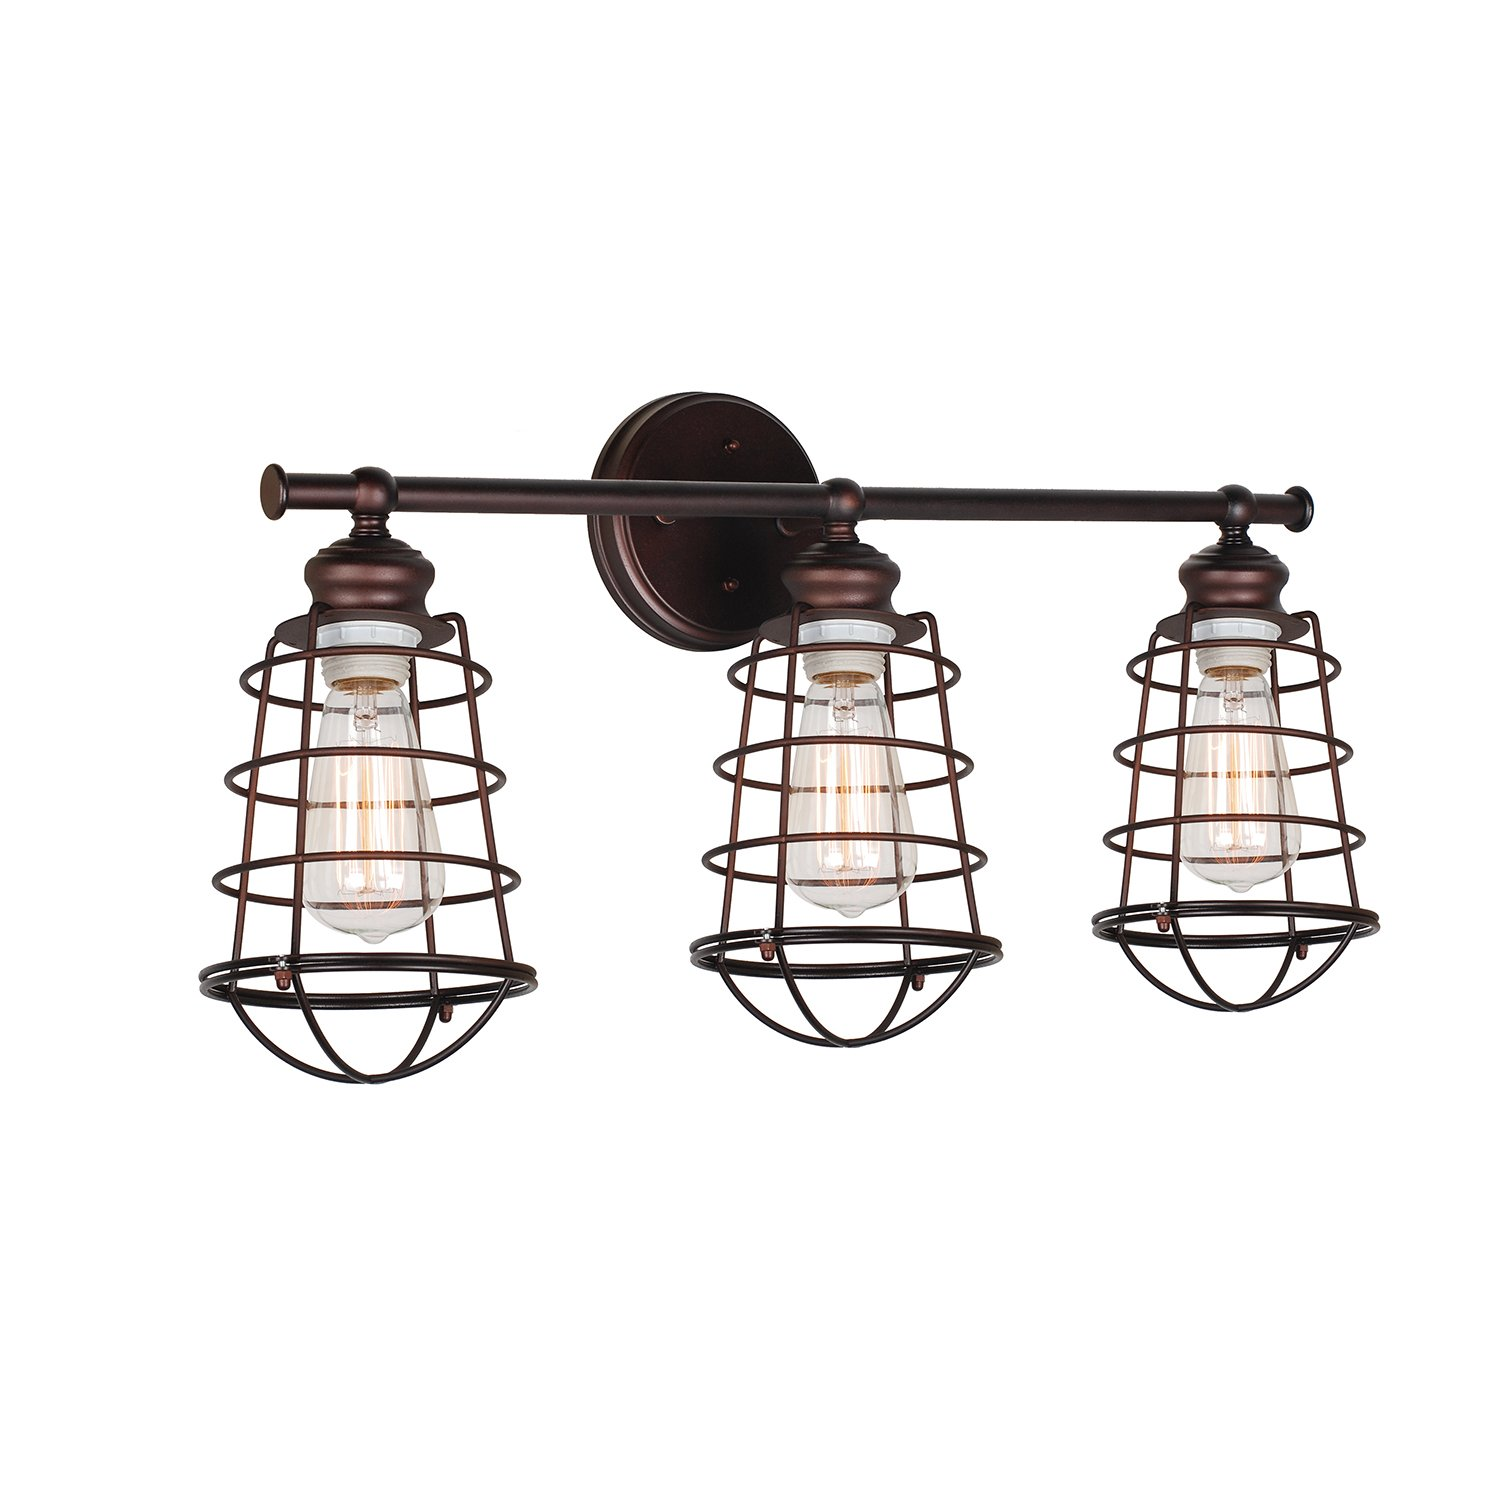 design house 519736 ajax 3 light vanity light bronze amazoncom bathroom vanity lighting bathroom